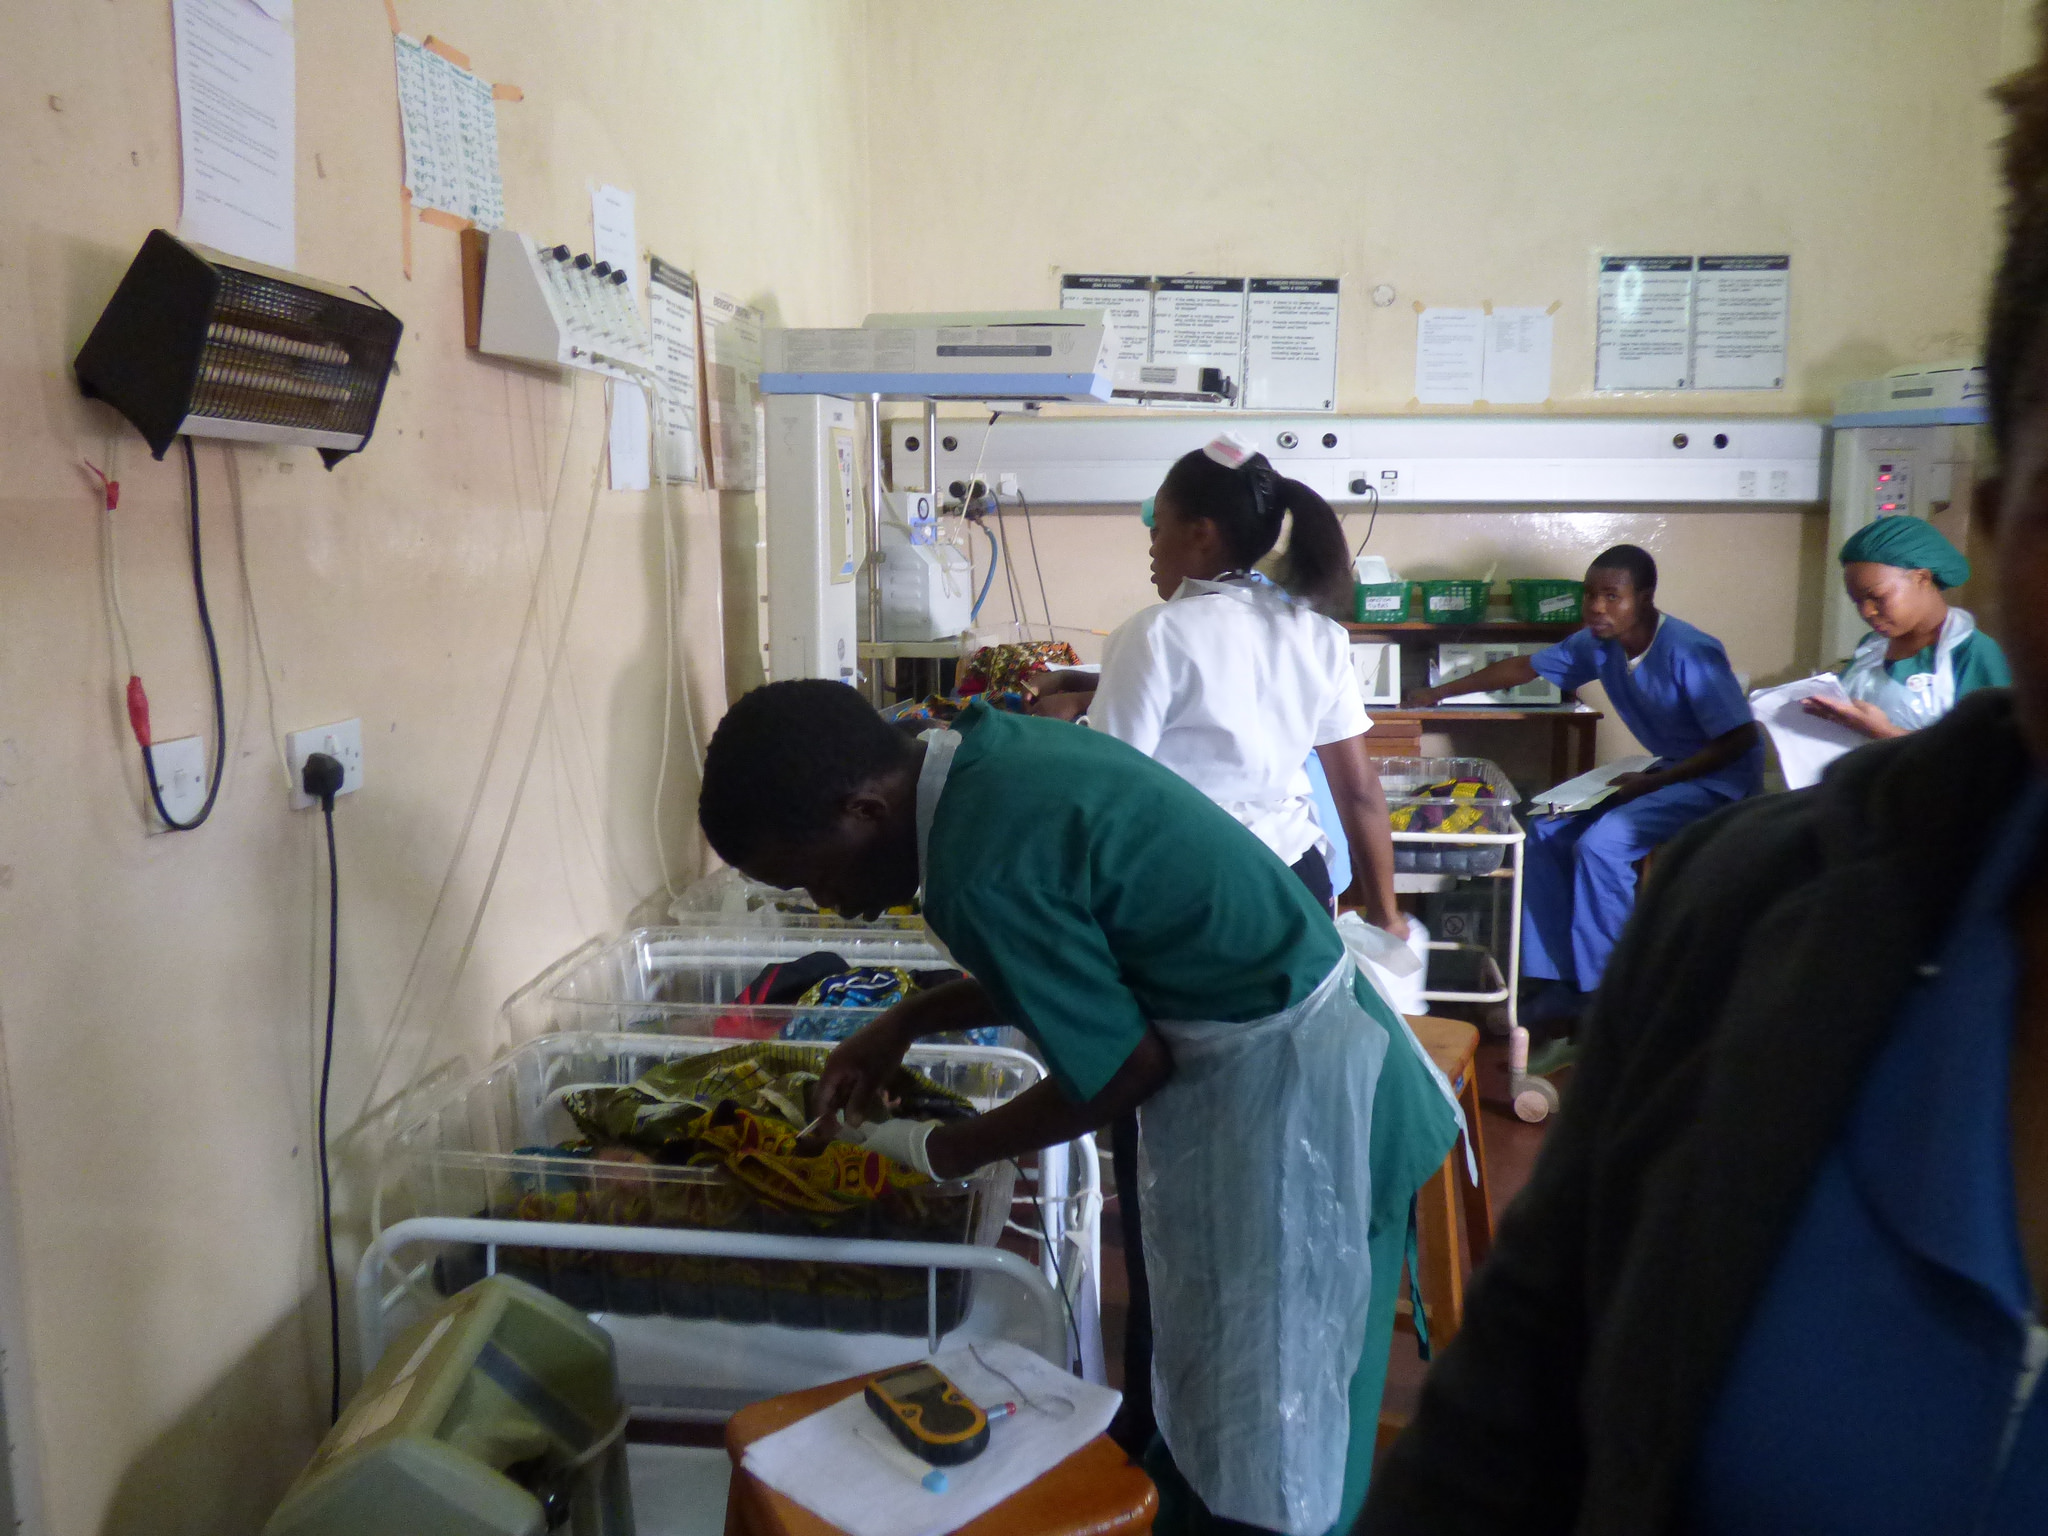 Pre-term newborns require special care after birth and should be kept separate from full-term babies in a hospital's nursery. Photo Credit: WRA Malawi.